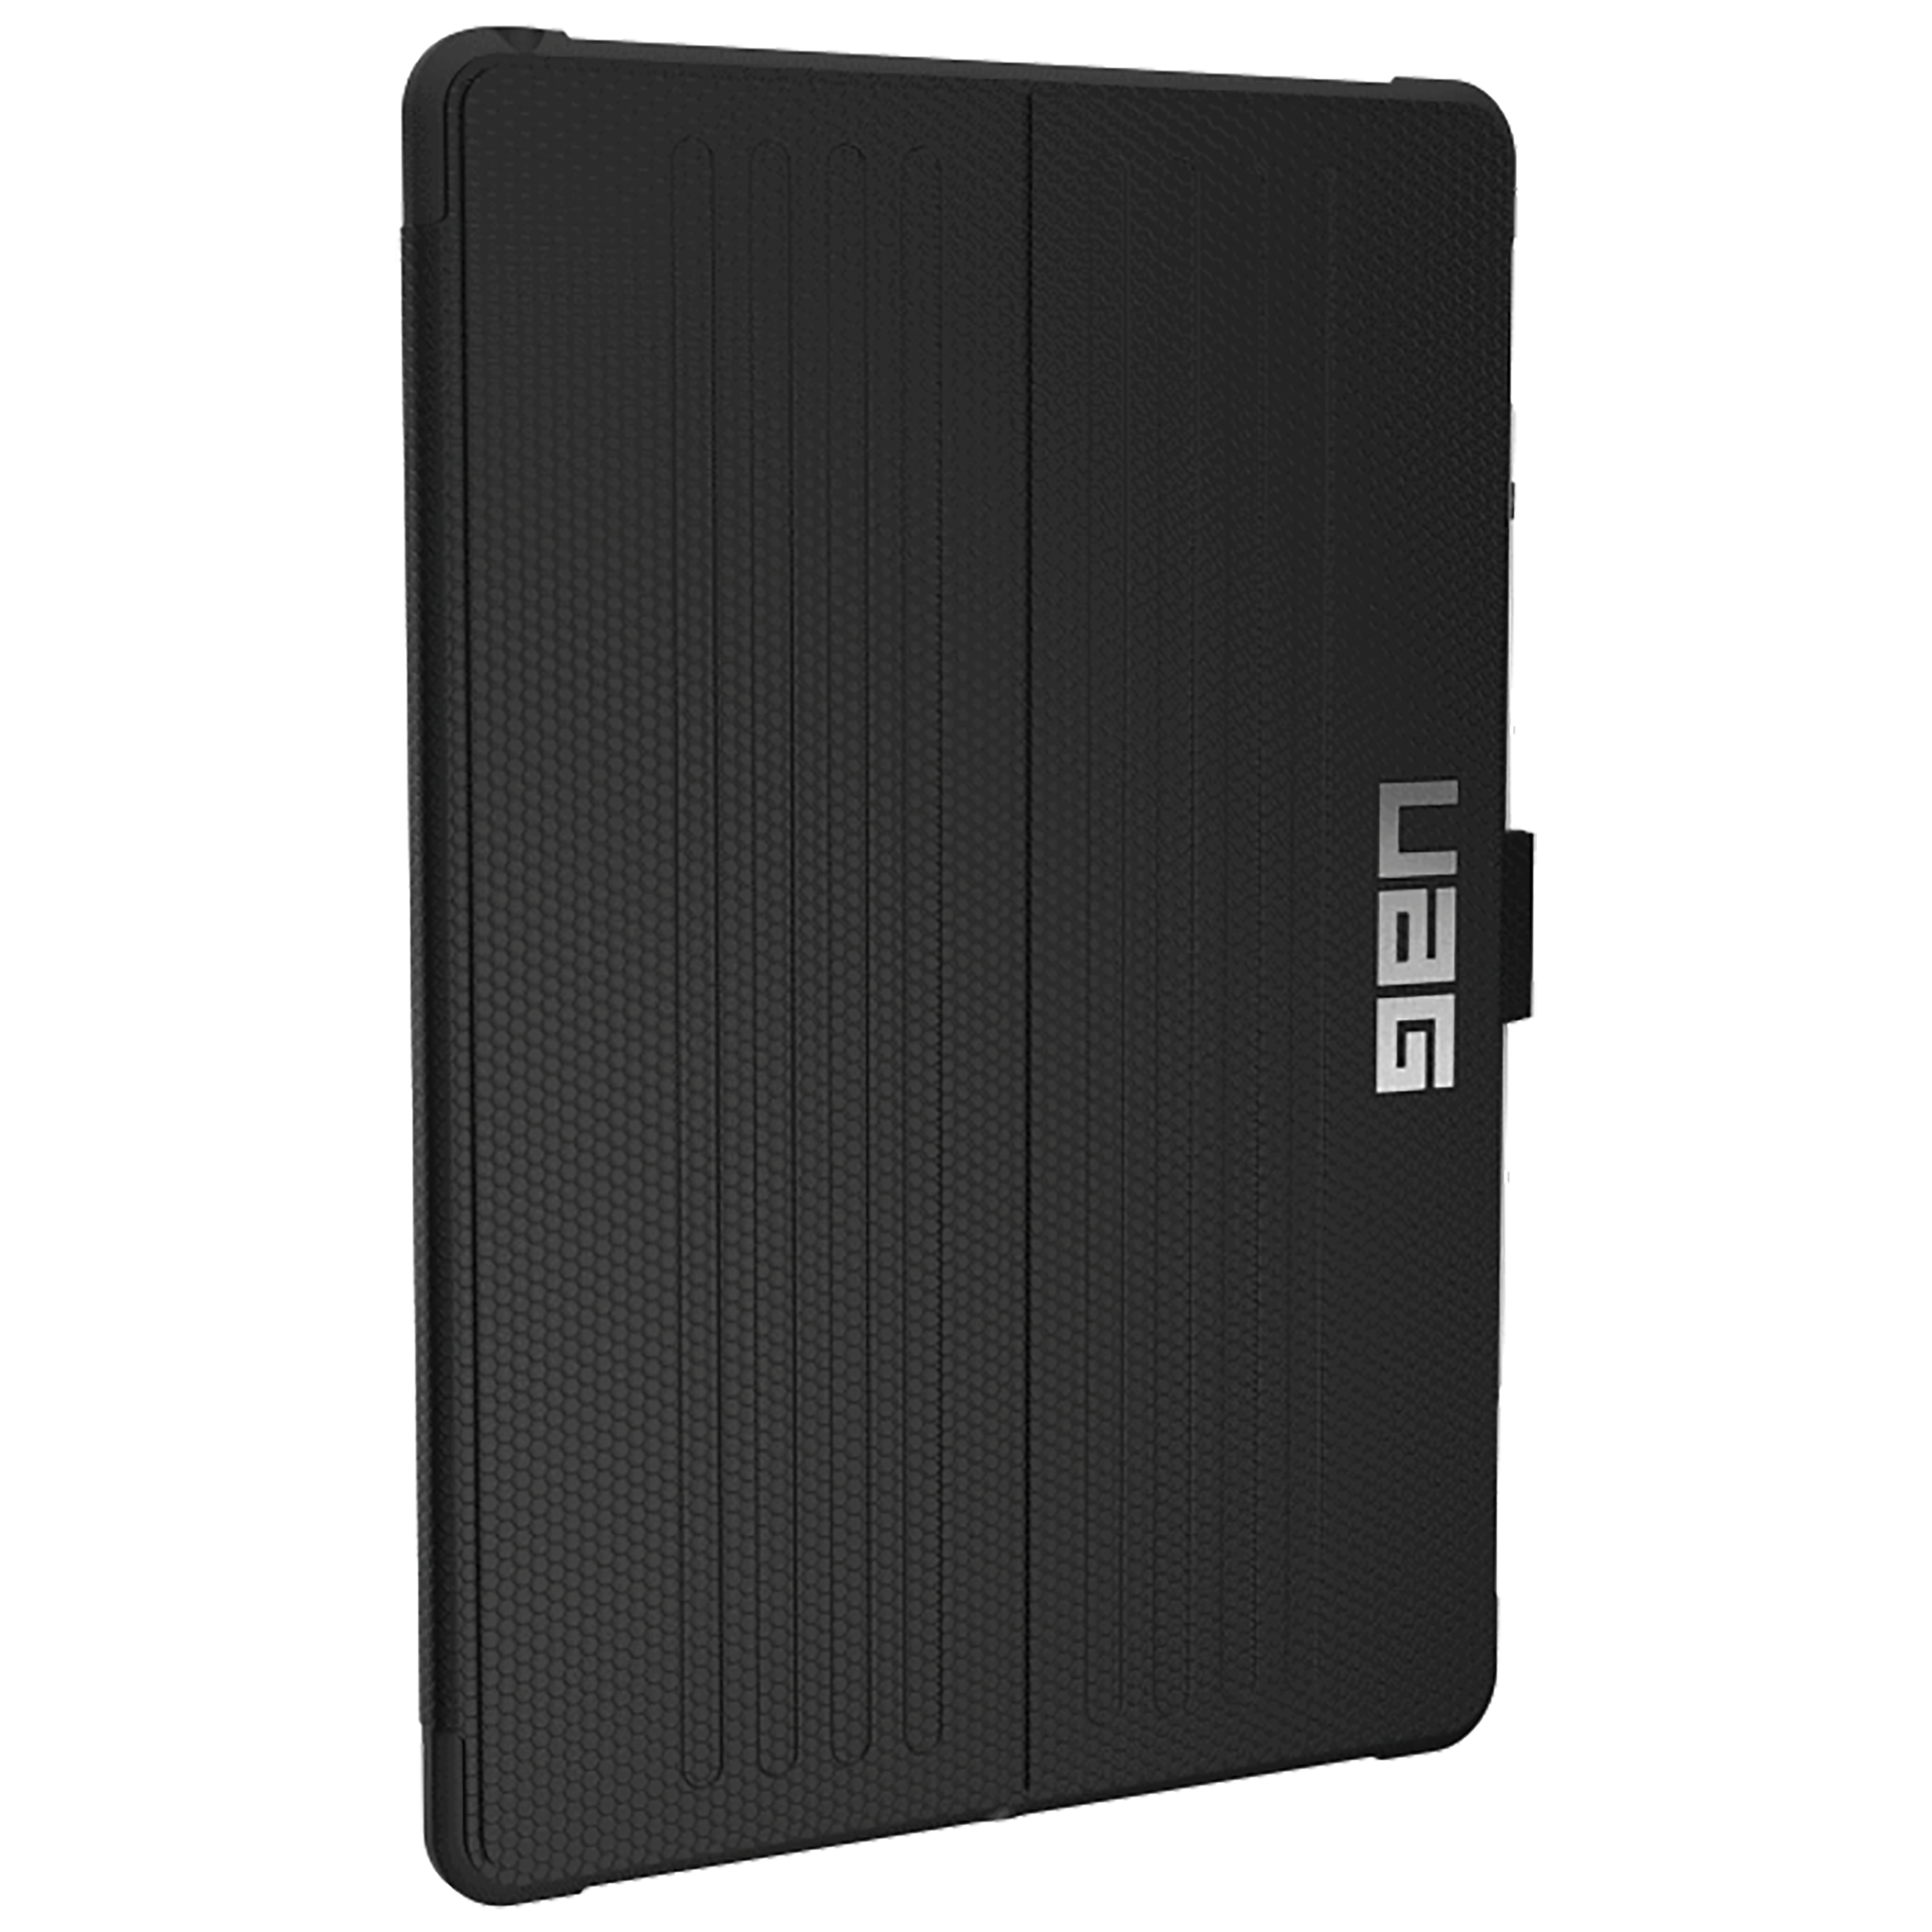 UAG Metropolis Polycarbonate Flip Case With Stand For iPad Air 10.5 Inch (Military Drop Tested Protection, UGMP_IPD105_BK, Black)_1